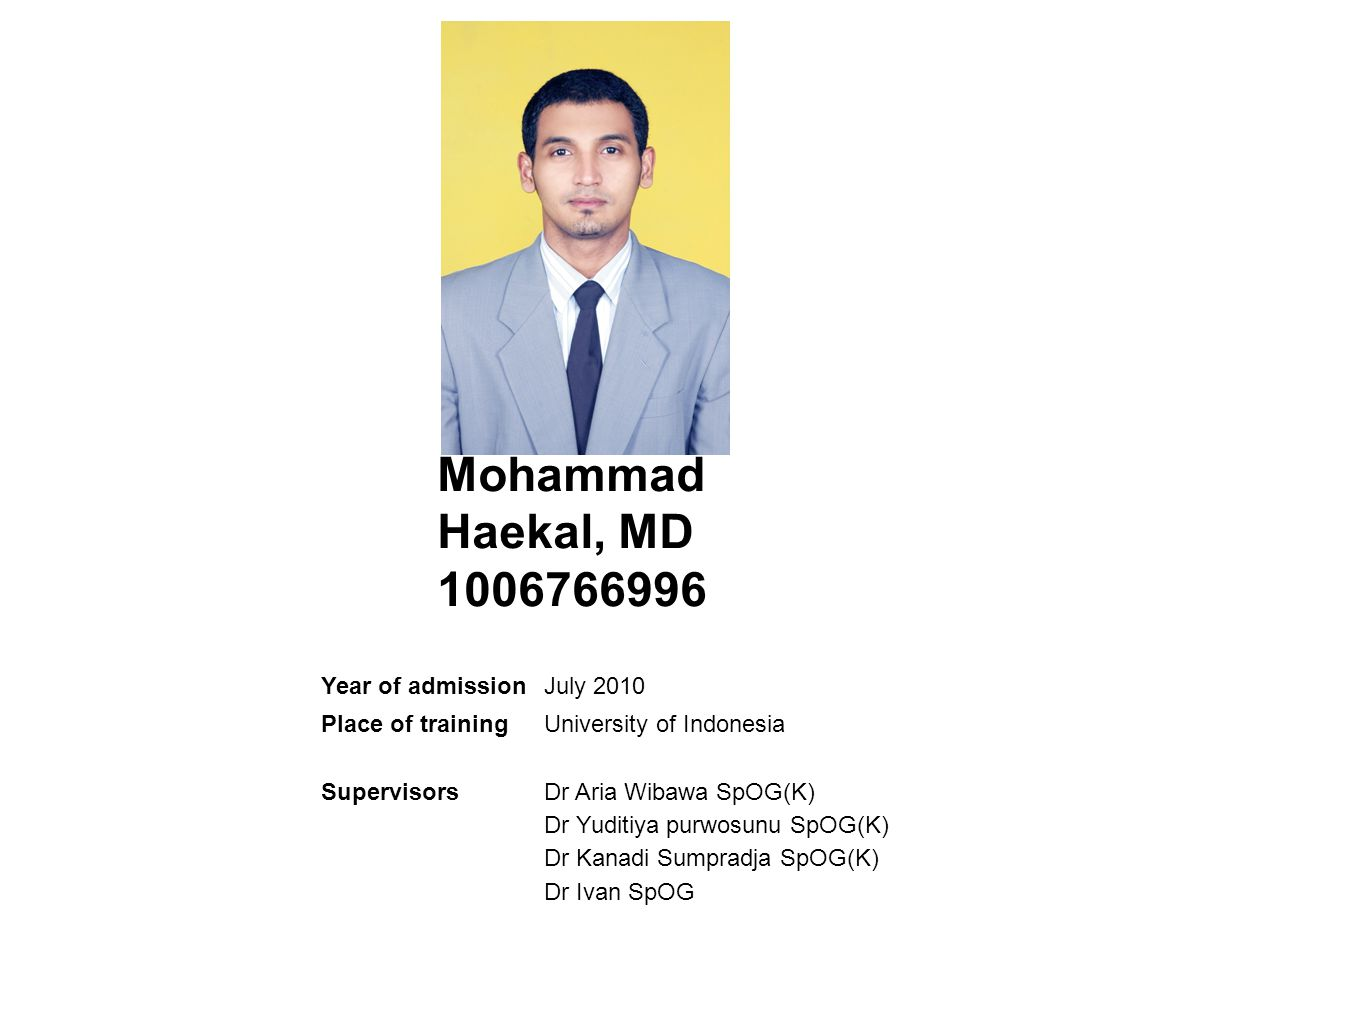 Mohammad Haekal, MD 1006766996 Year of admission July 2010